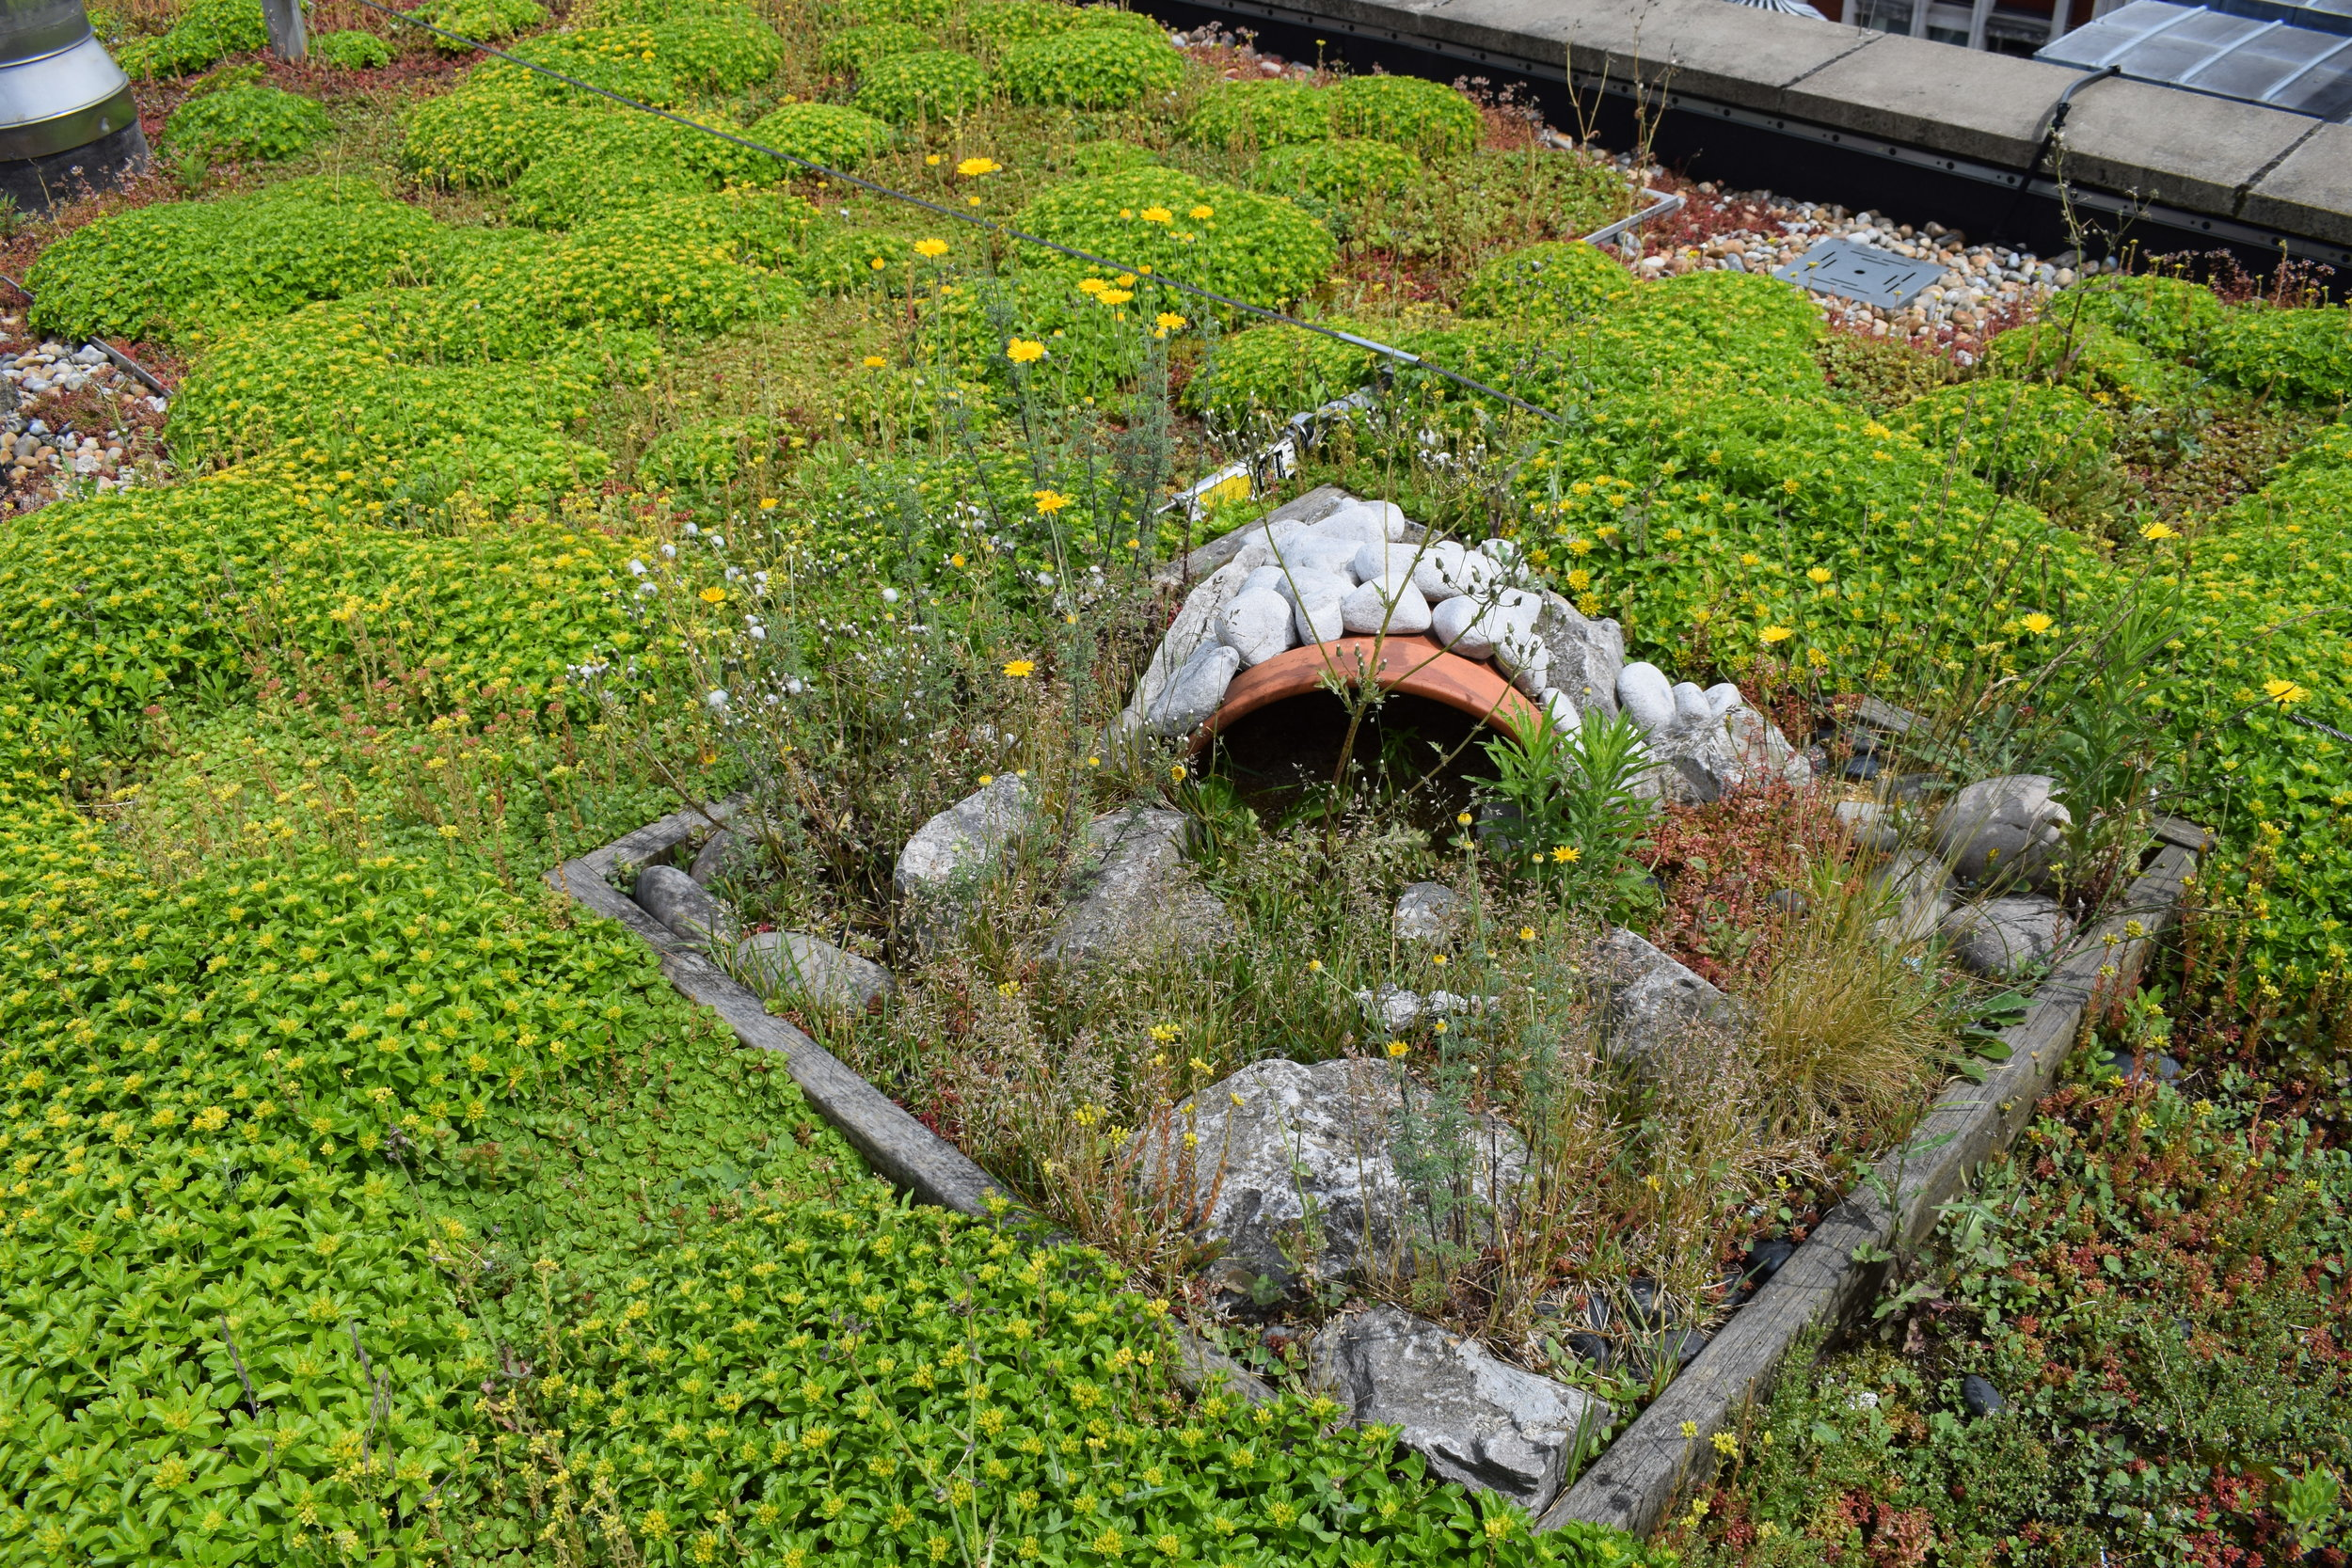 11 Slingsby Place - Green Roof